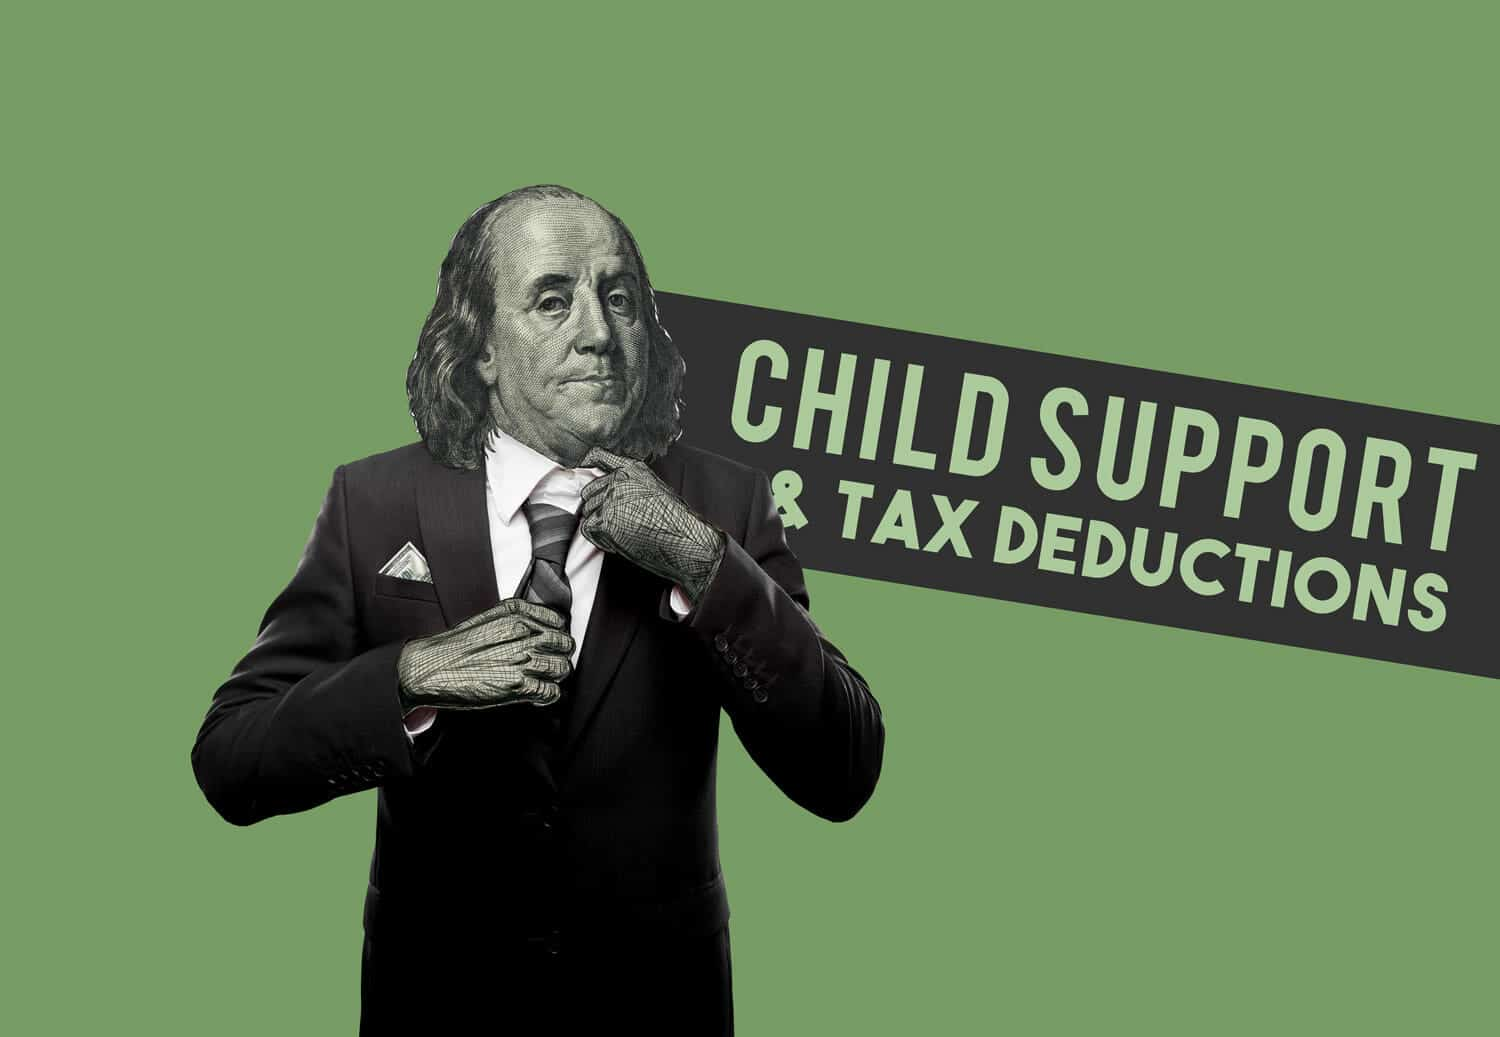 child support and tax deductions